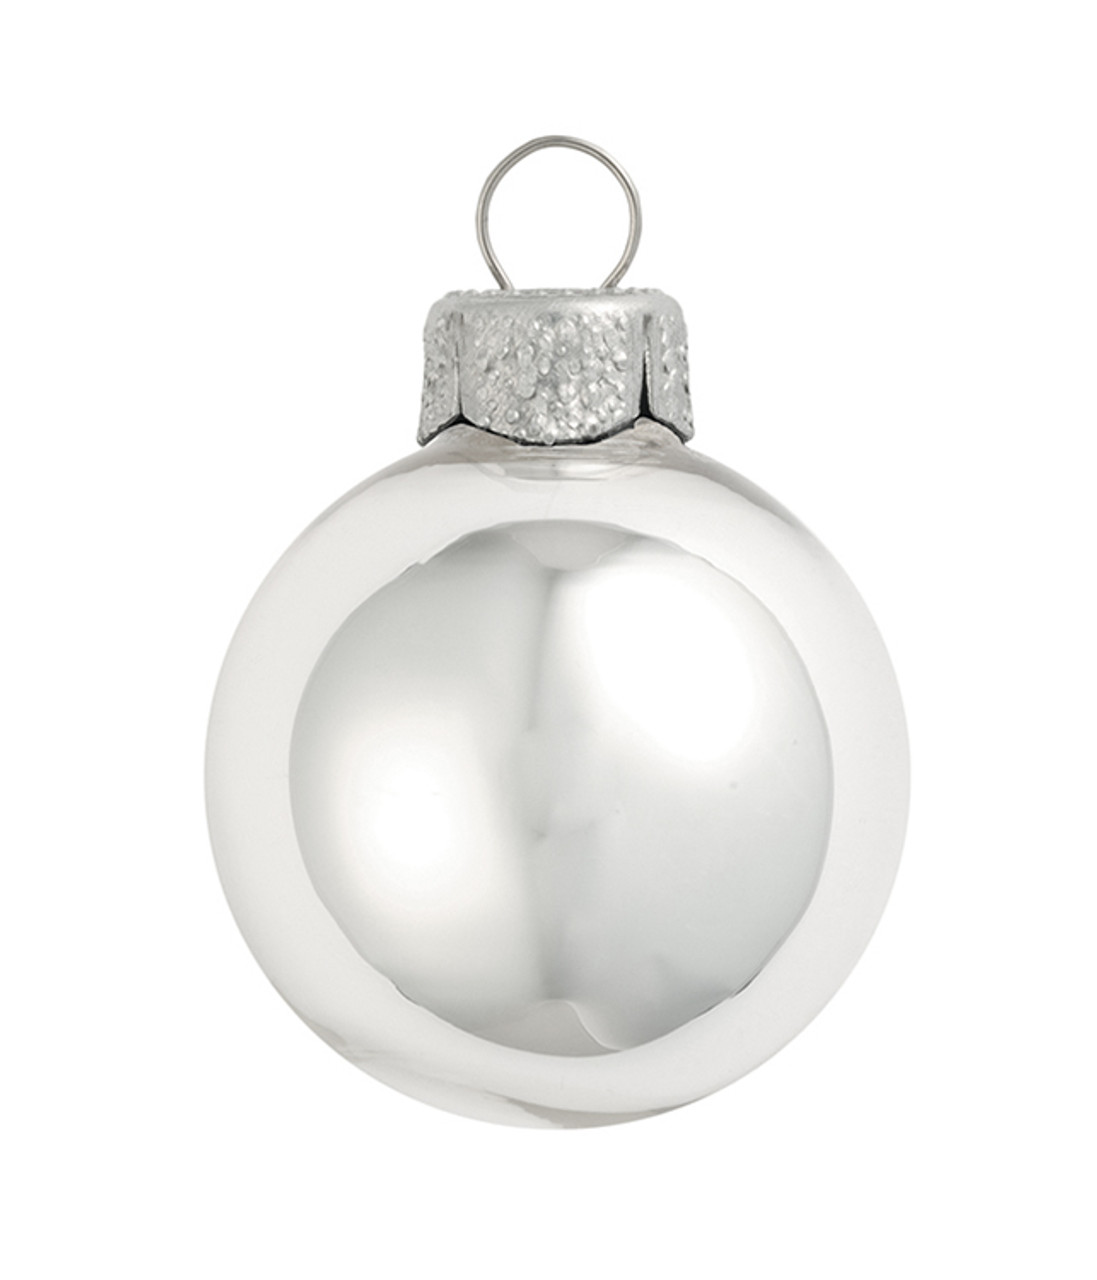 6ct Pearl White Silver Shiny Glass Christmas Ball Ornaments 4 100mm Christmas Central